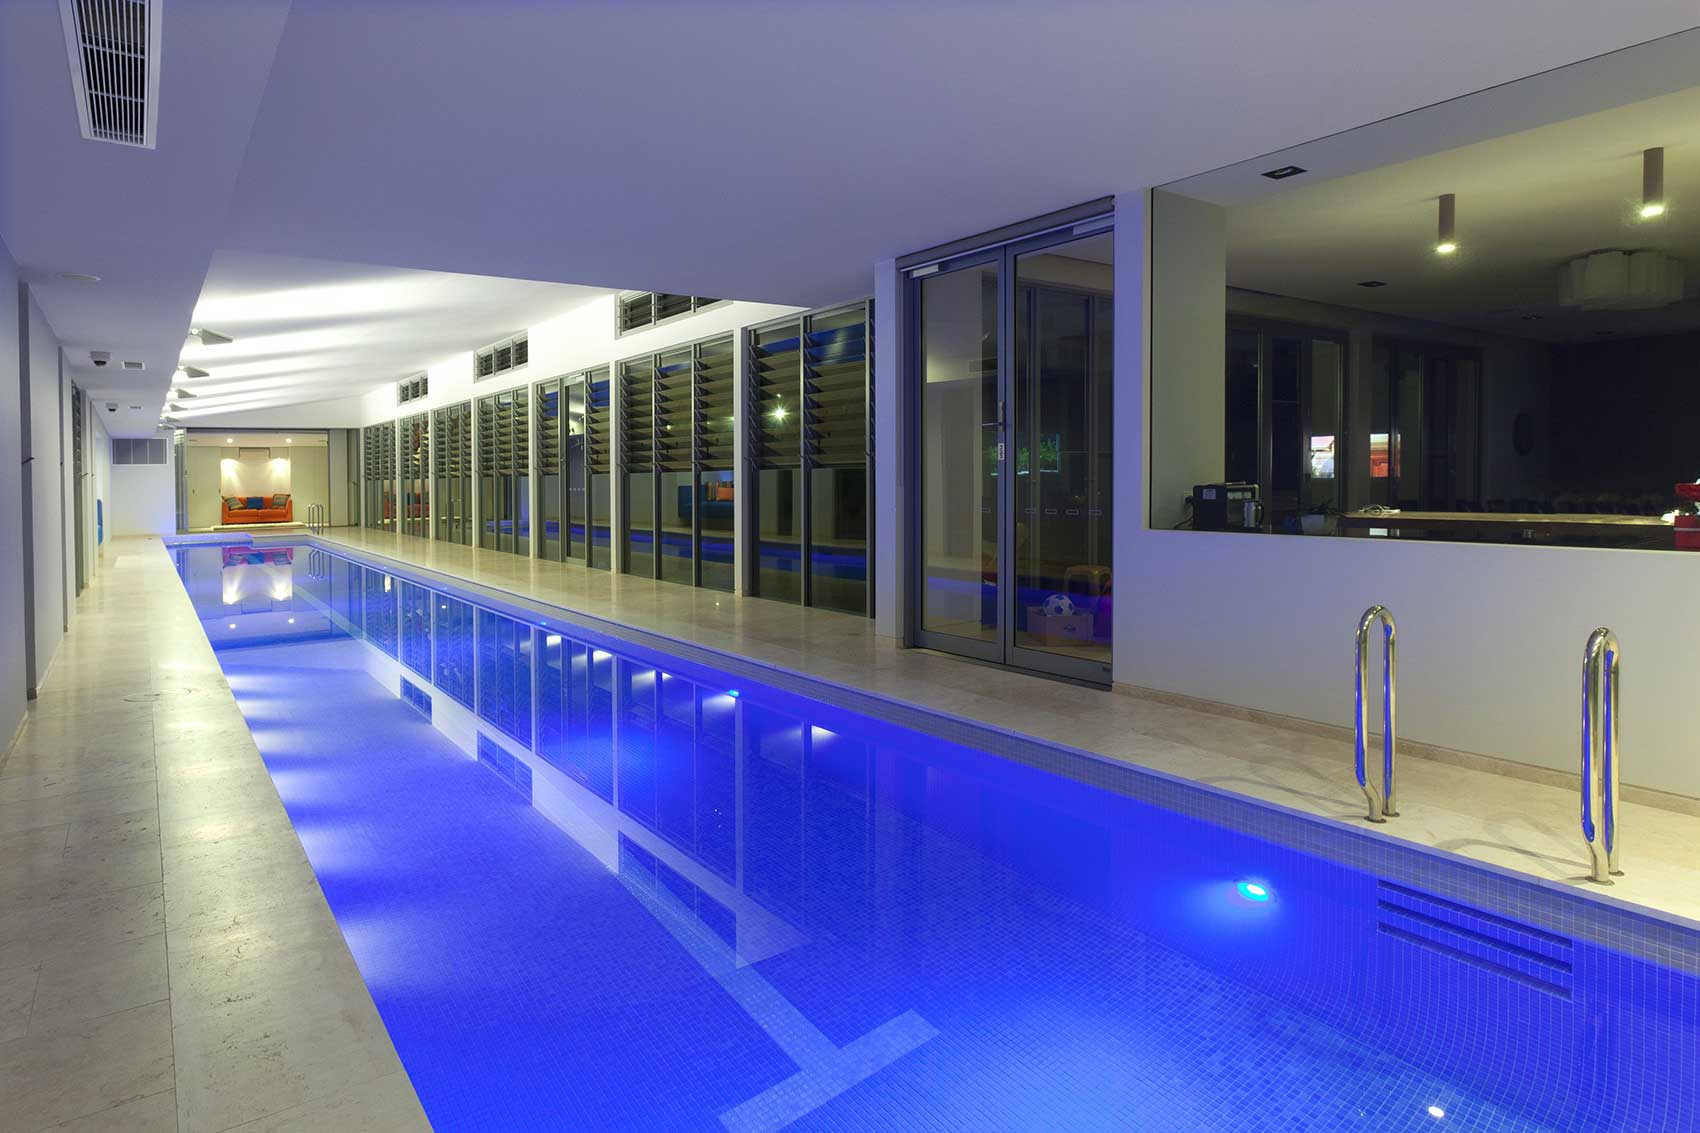 The Ultimate Luxury, A Sunset Indoor Lap Pool And Spa! | Sunset Pools Sydney